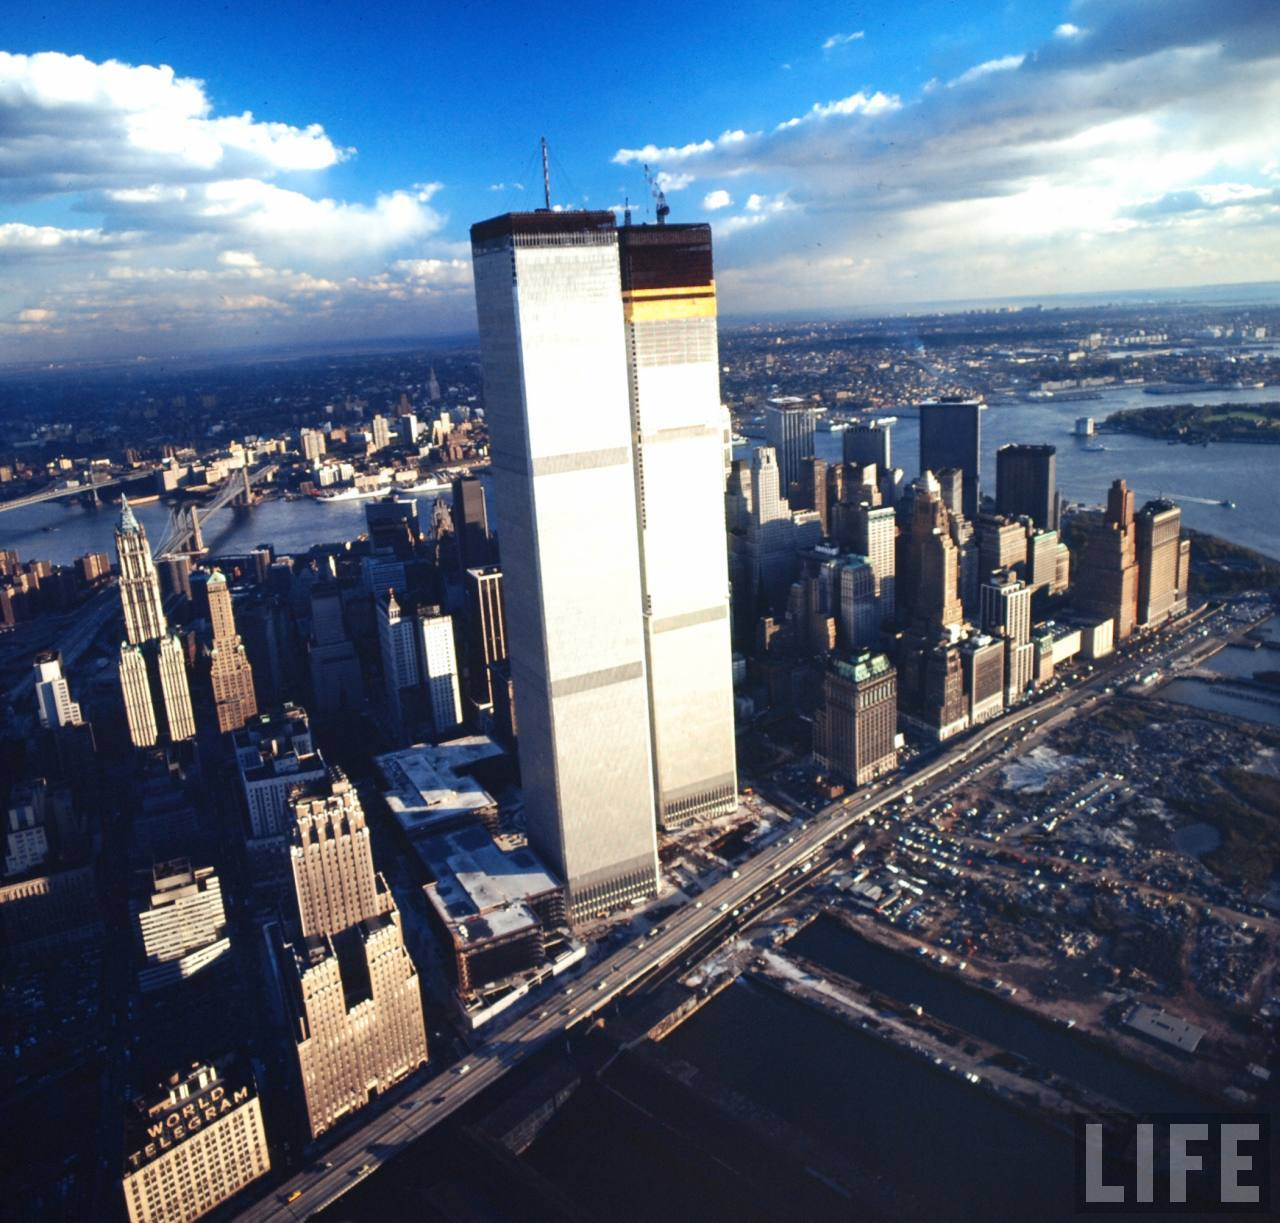 World Trade Center Construction : Shooting film wonderful aerial view of world trade center